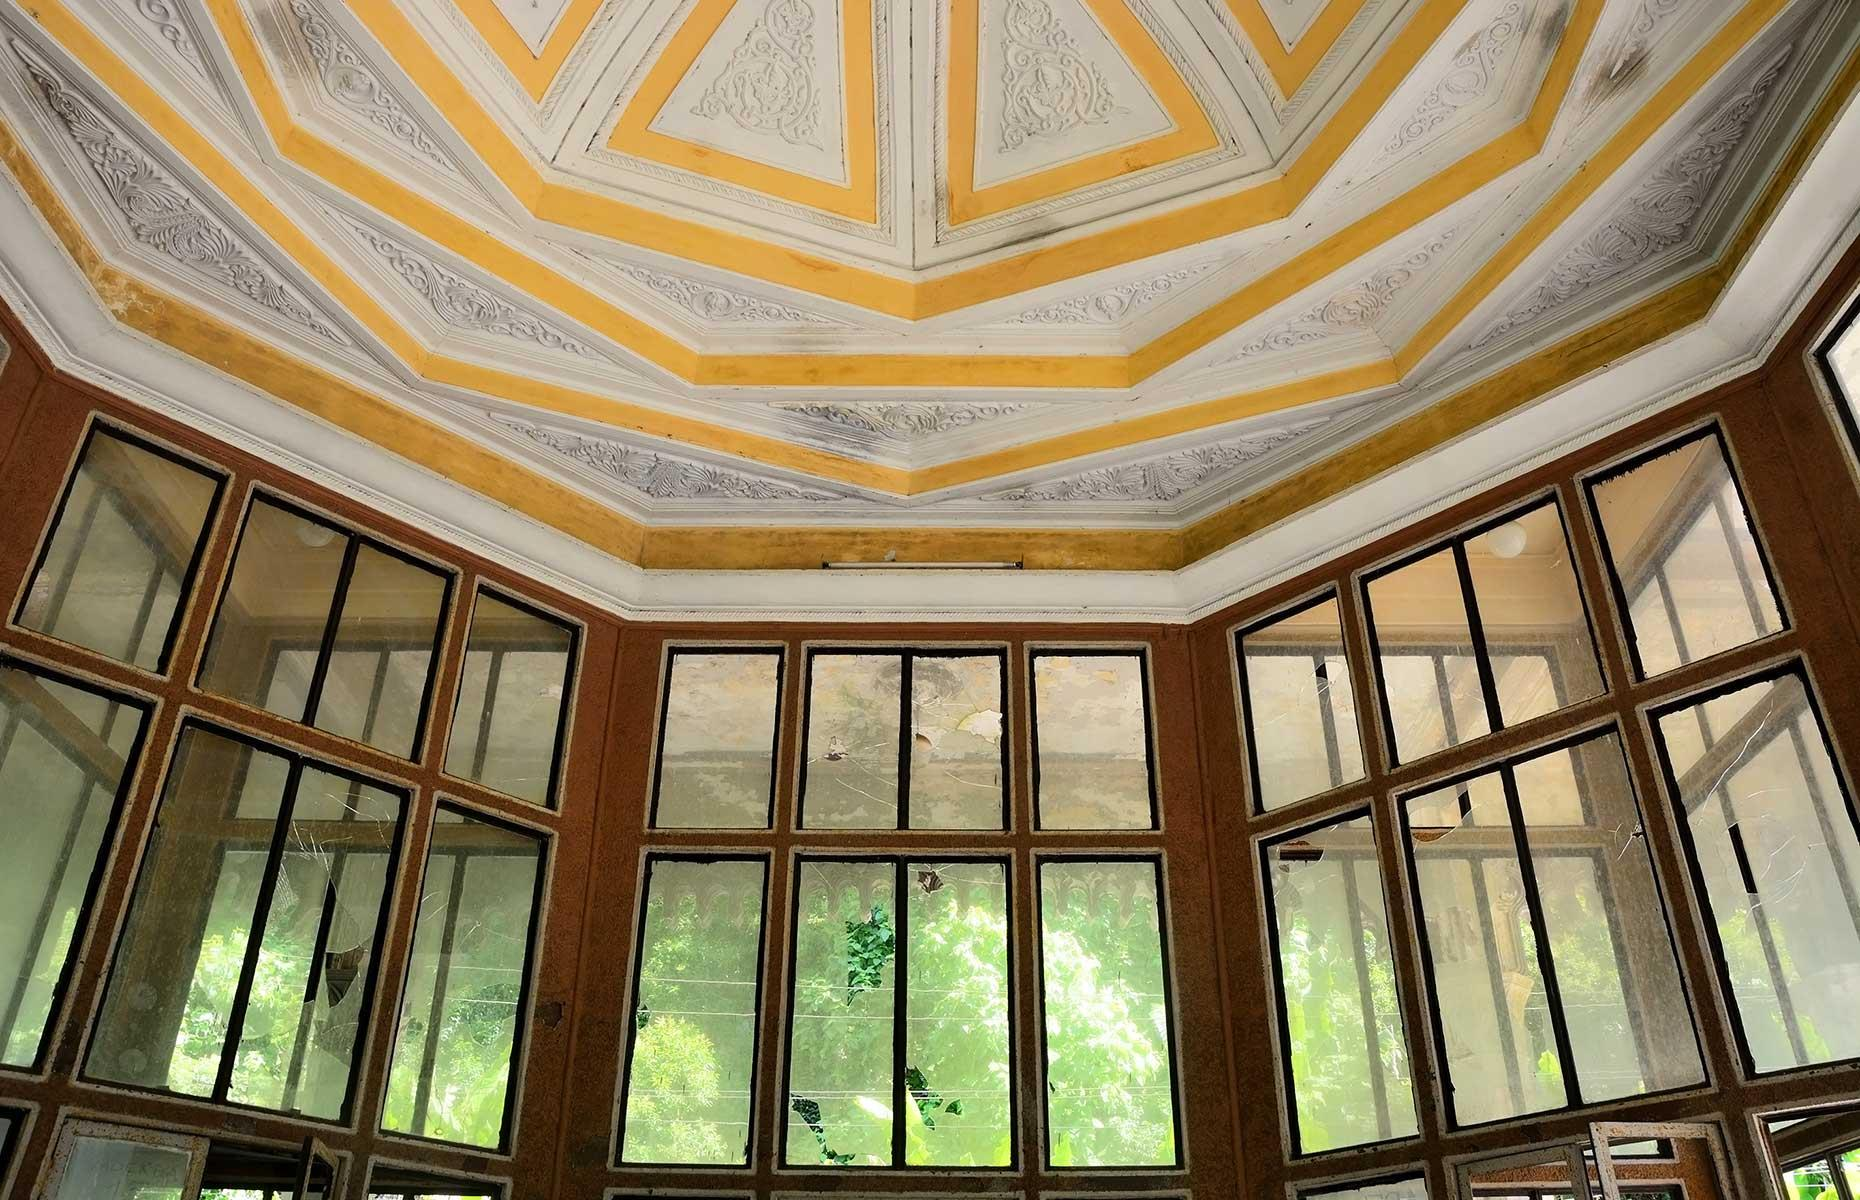 Slide 30 of 33: Inside some of the glass windows are broken and the wooden paneling has been damaged but the ceiling remains intact. Today, the station has become something of a magnet for photographers keen to picture the pavilion's unique shape.